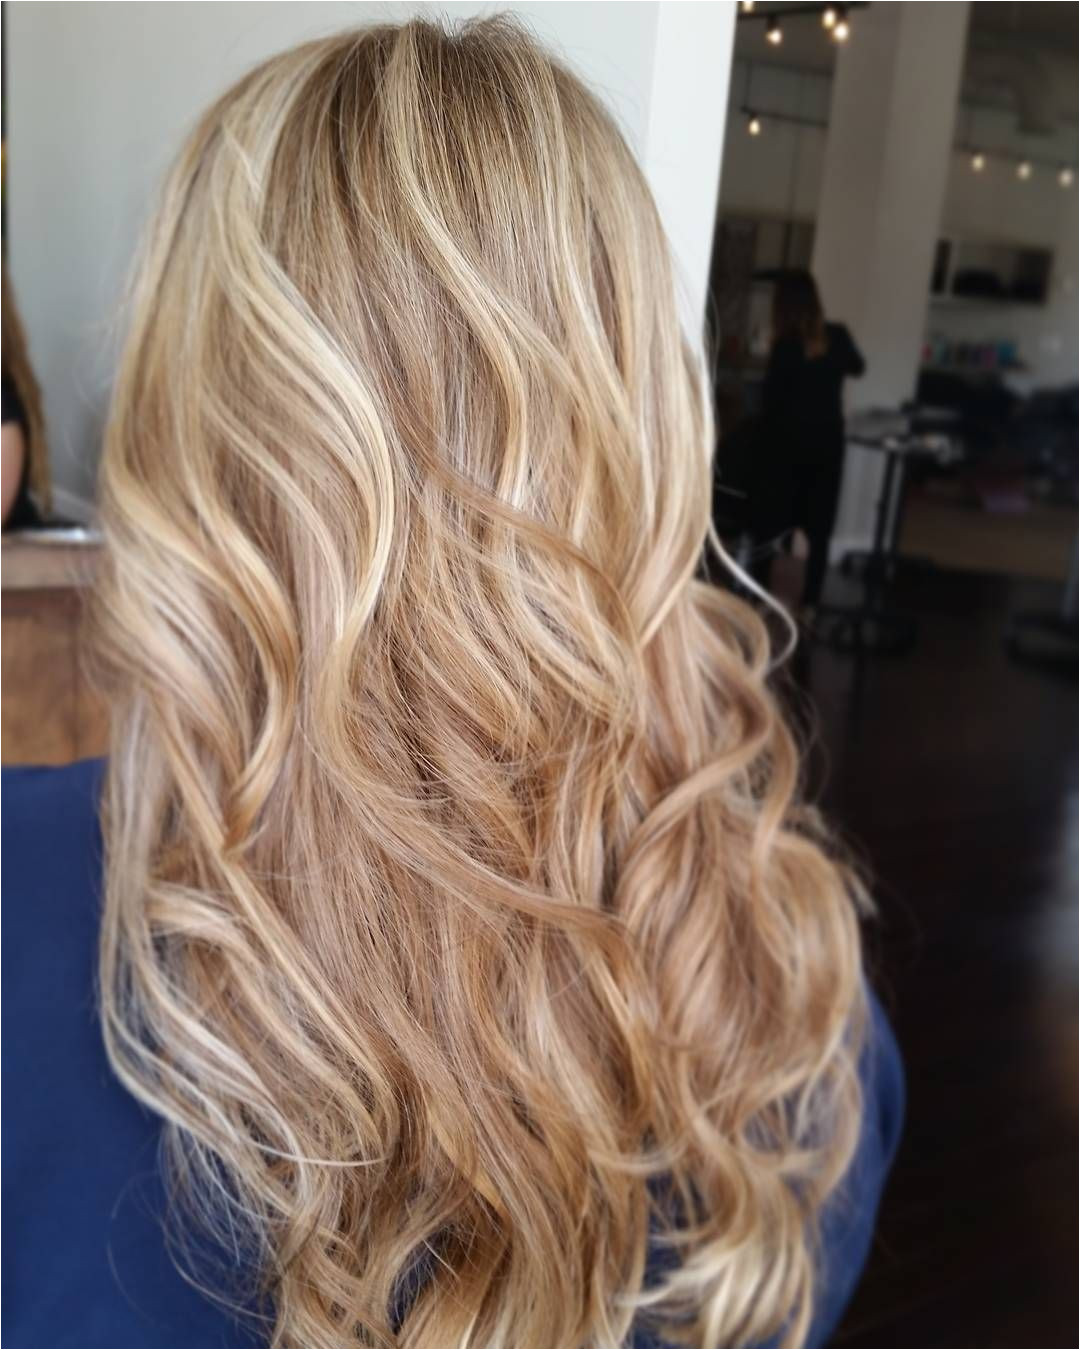 60 Alluring Designs for Blonde Hair with Lowlights and Highlights — More Dimension for Your Hair